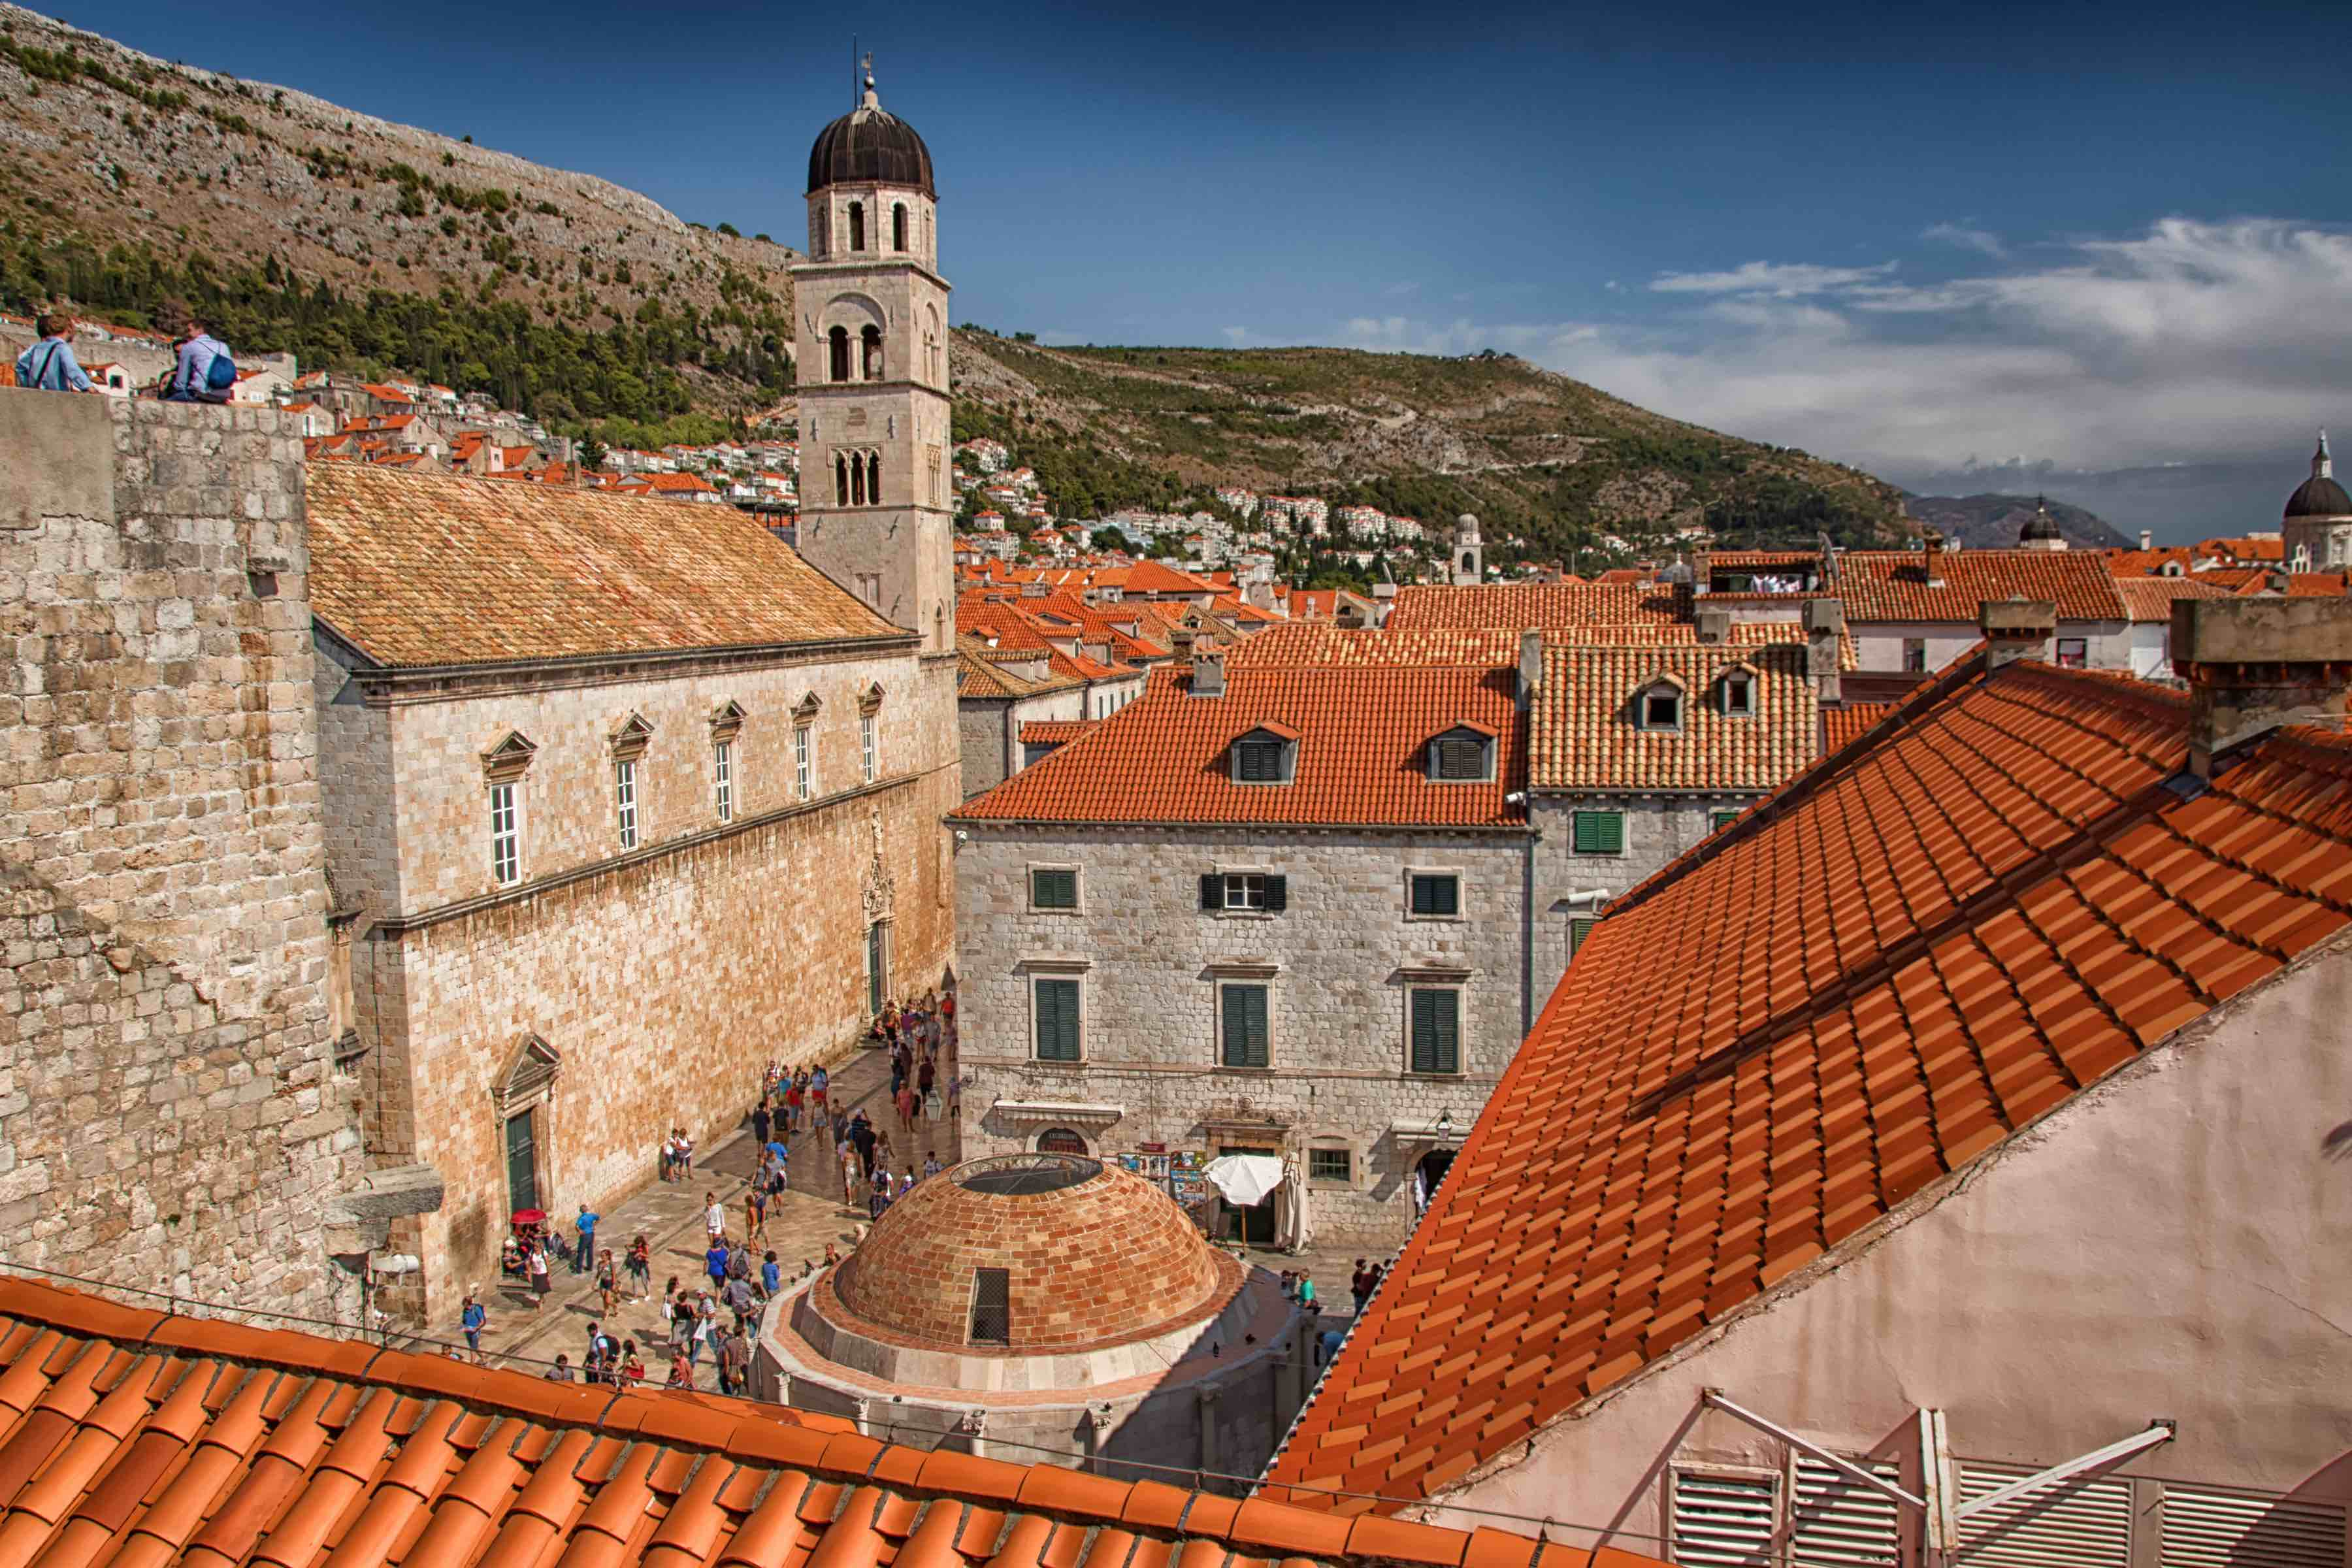 The uniquely historic walled city of Dubrovnik, Croatia.